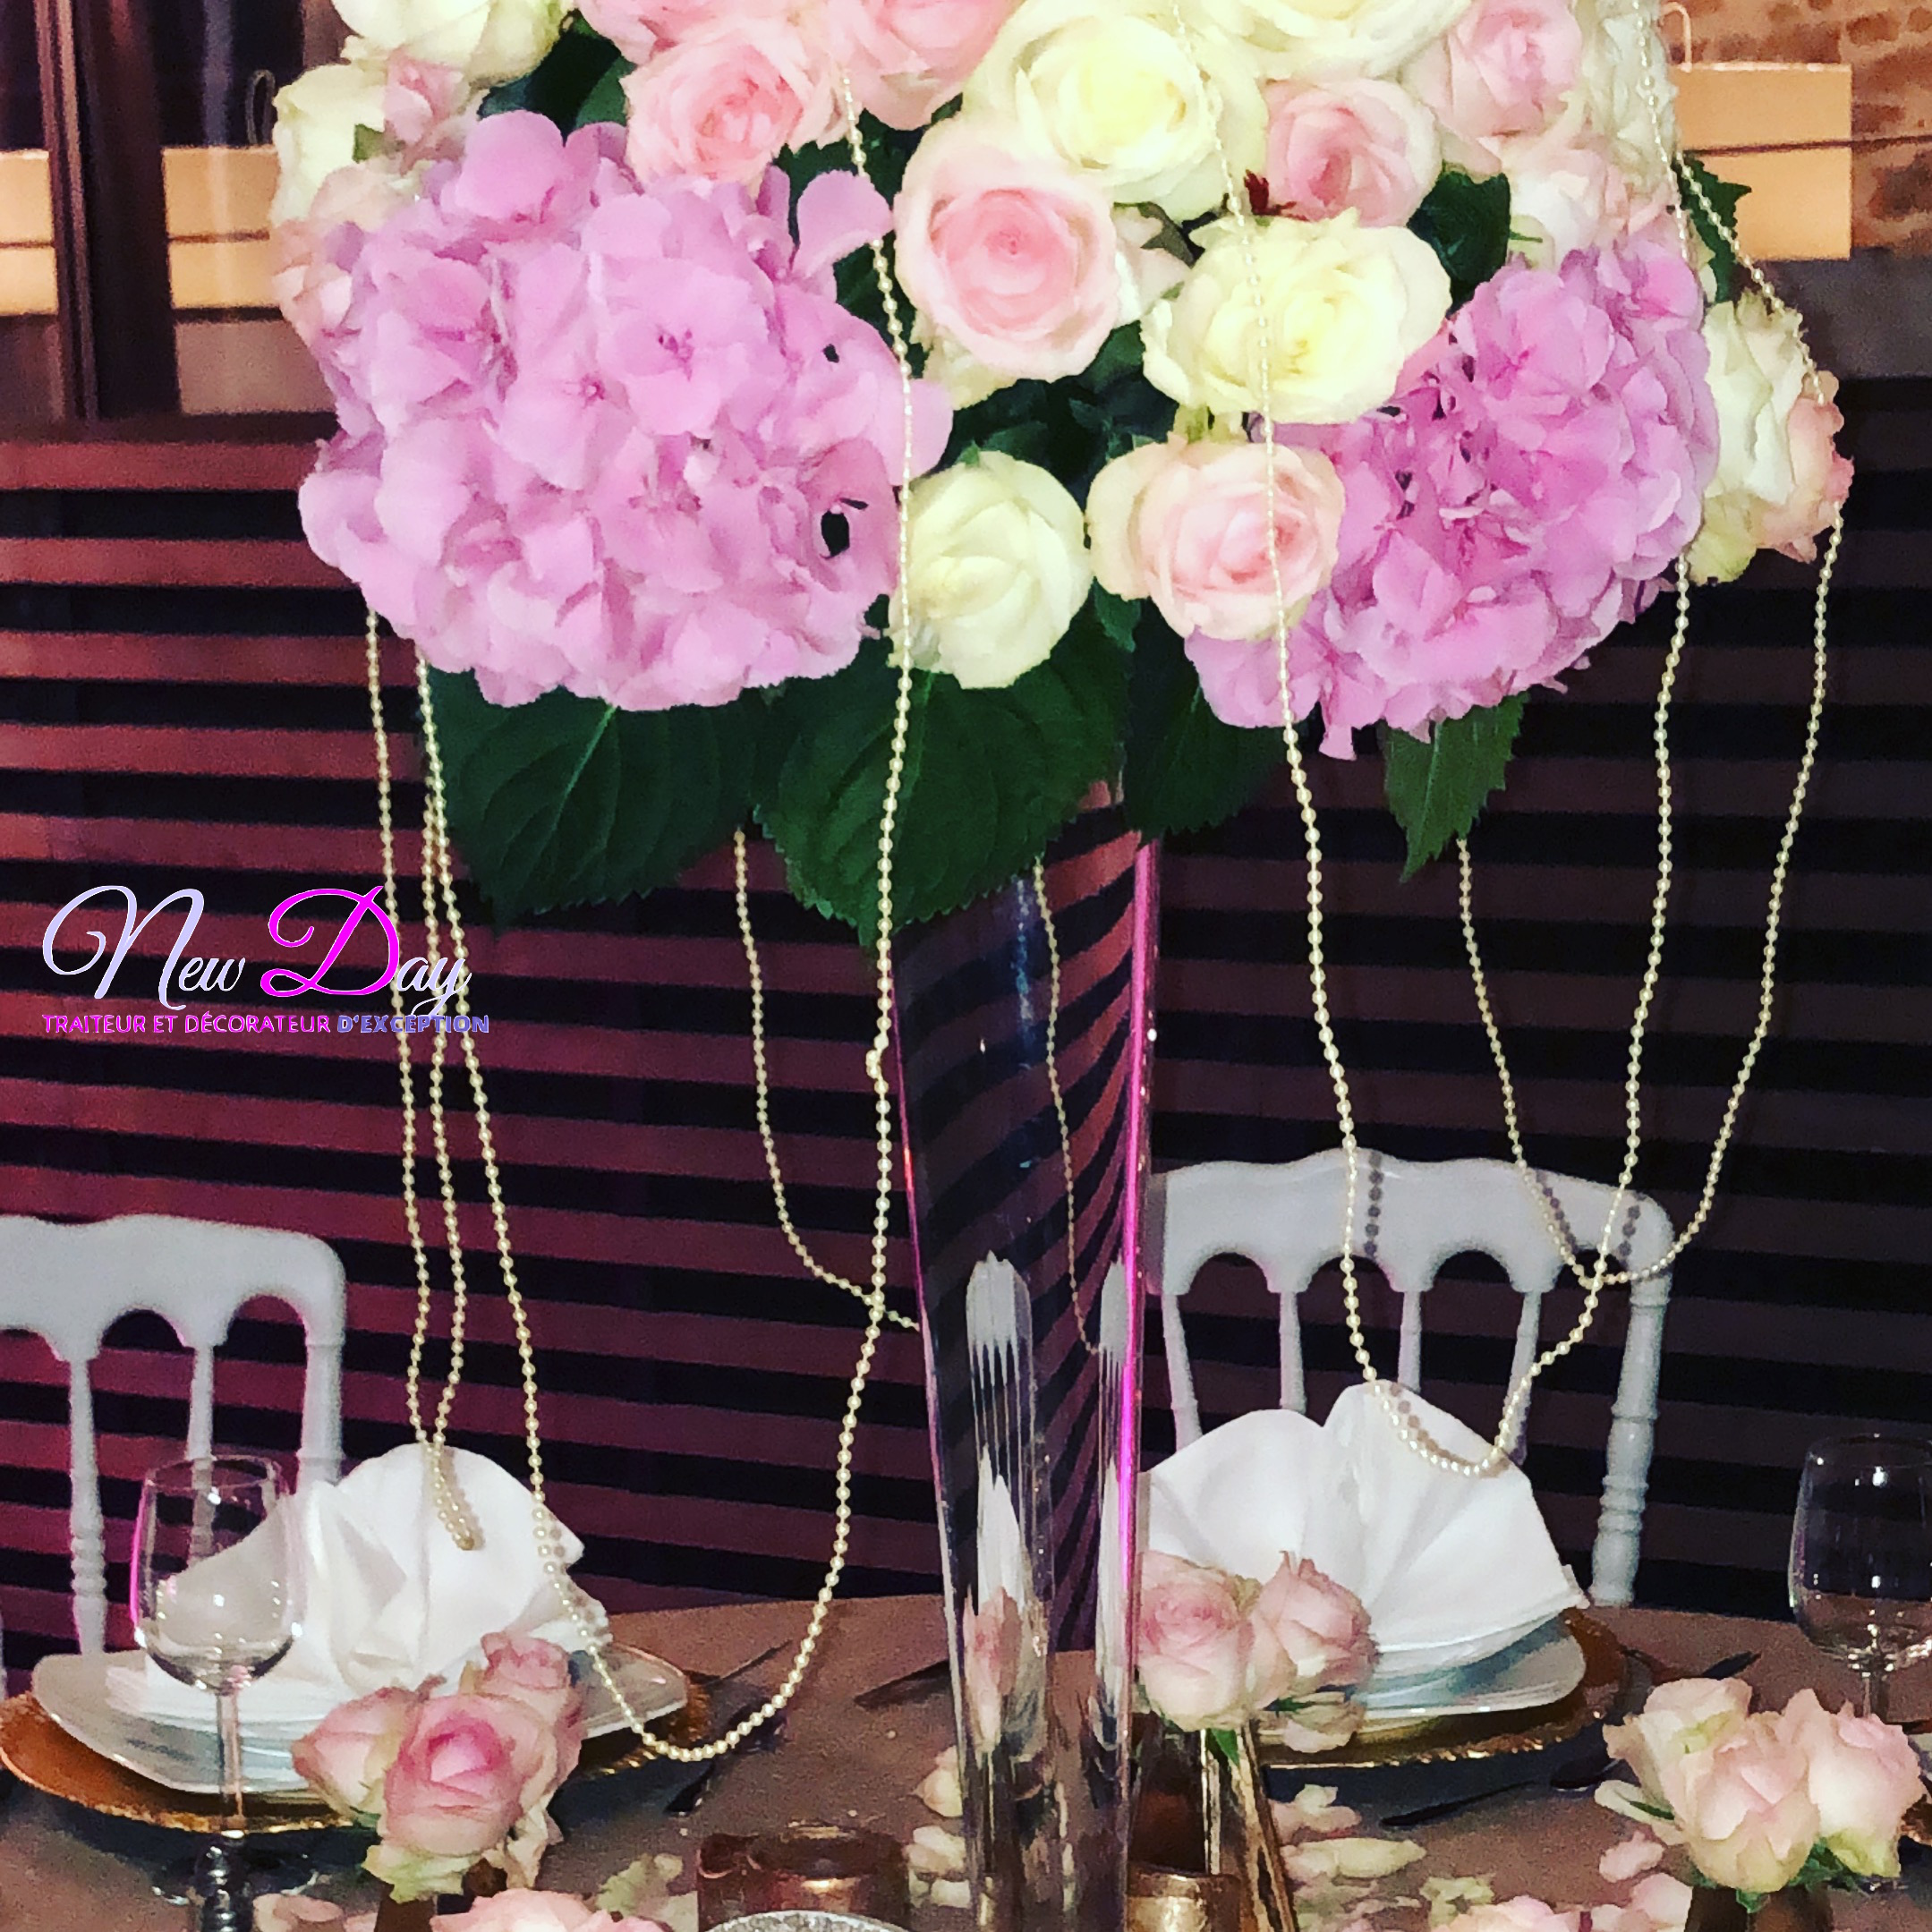 Location Décoration De Mariage Art Floral New Day Evenements